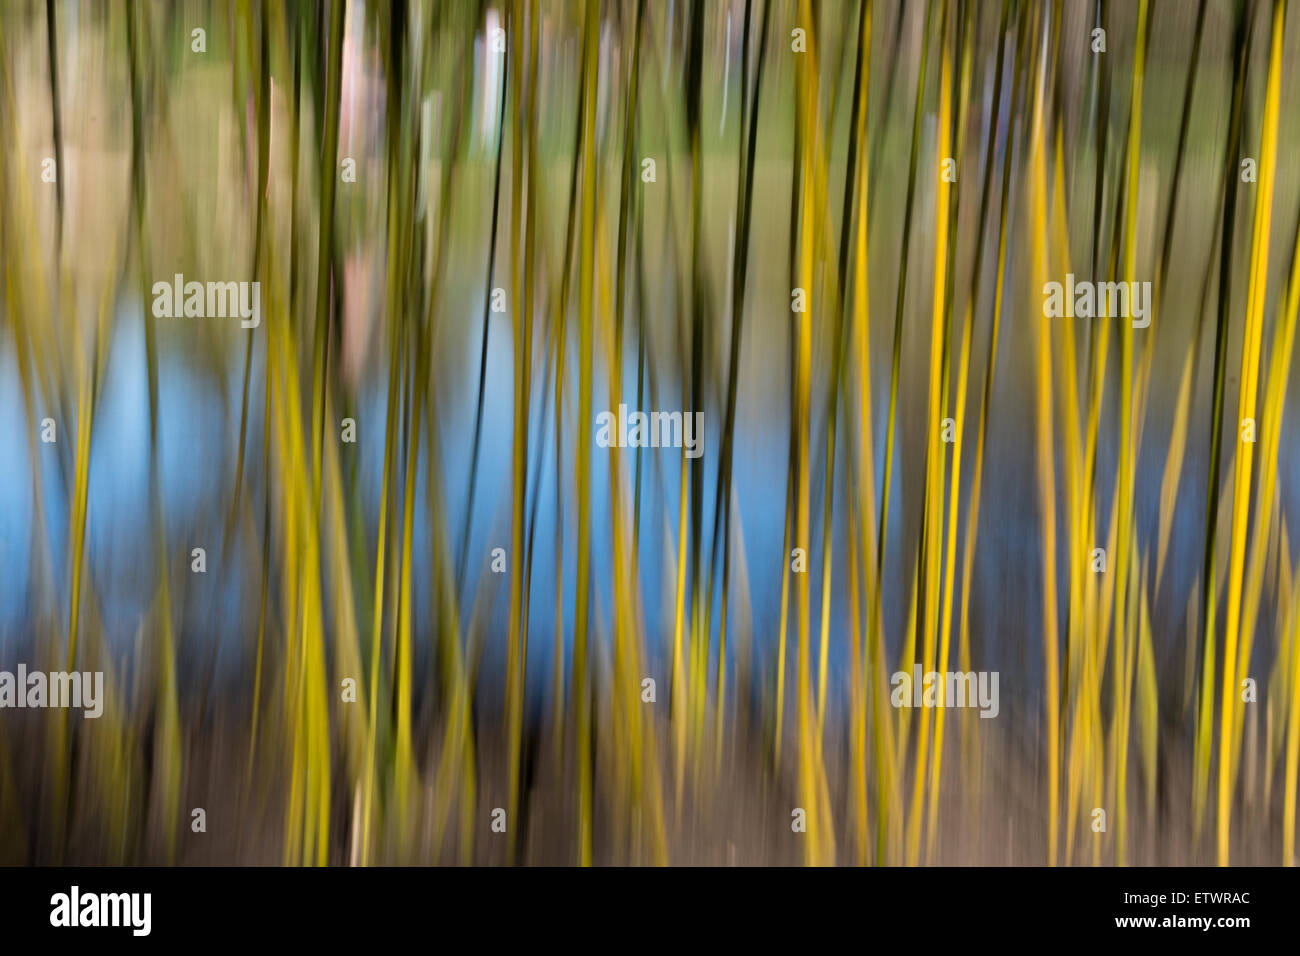 Abstract made from in-camera motion blur on bamboo plants and water - Stock Image